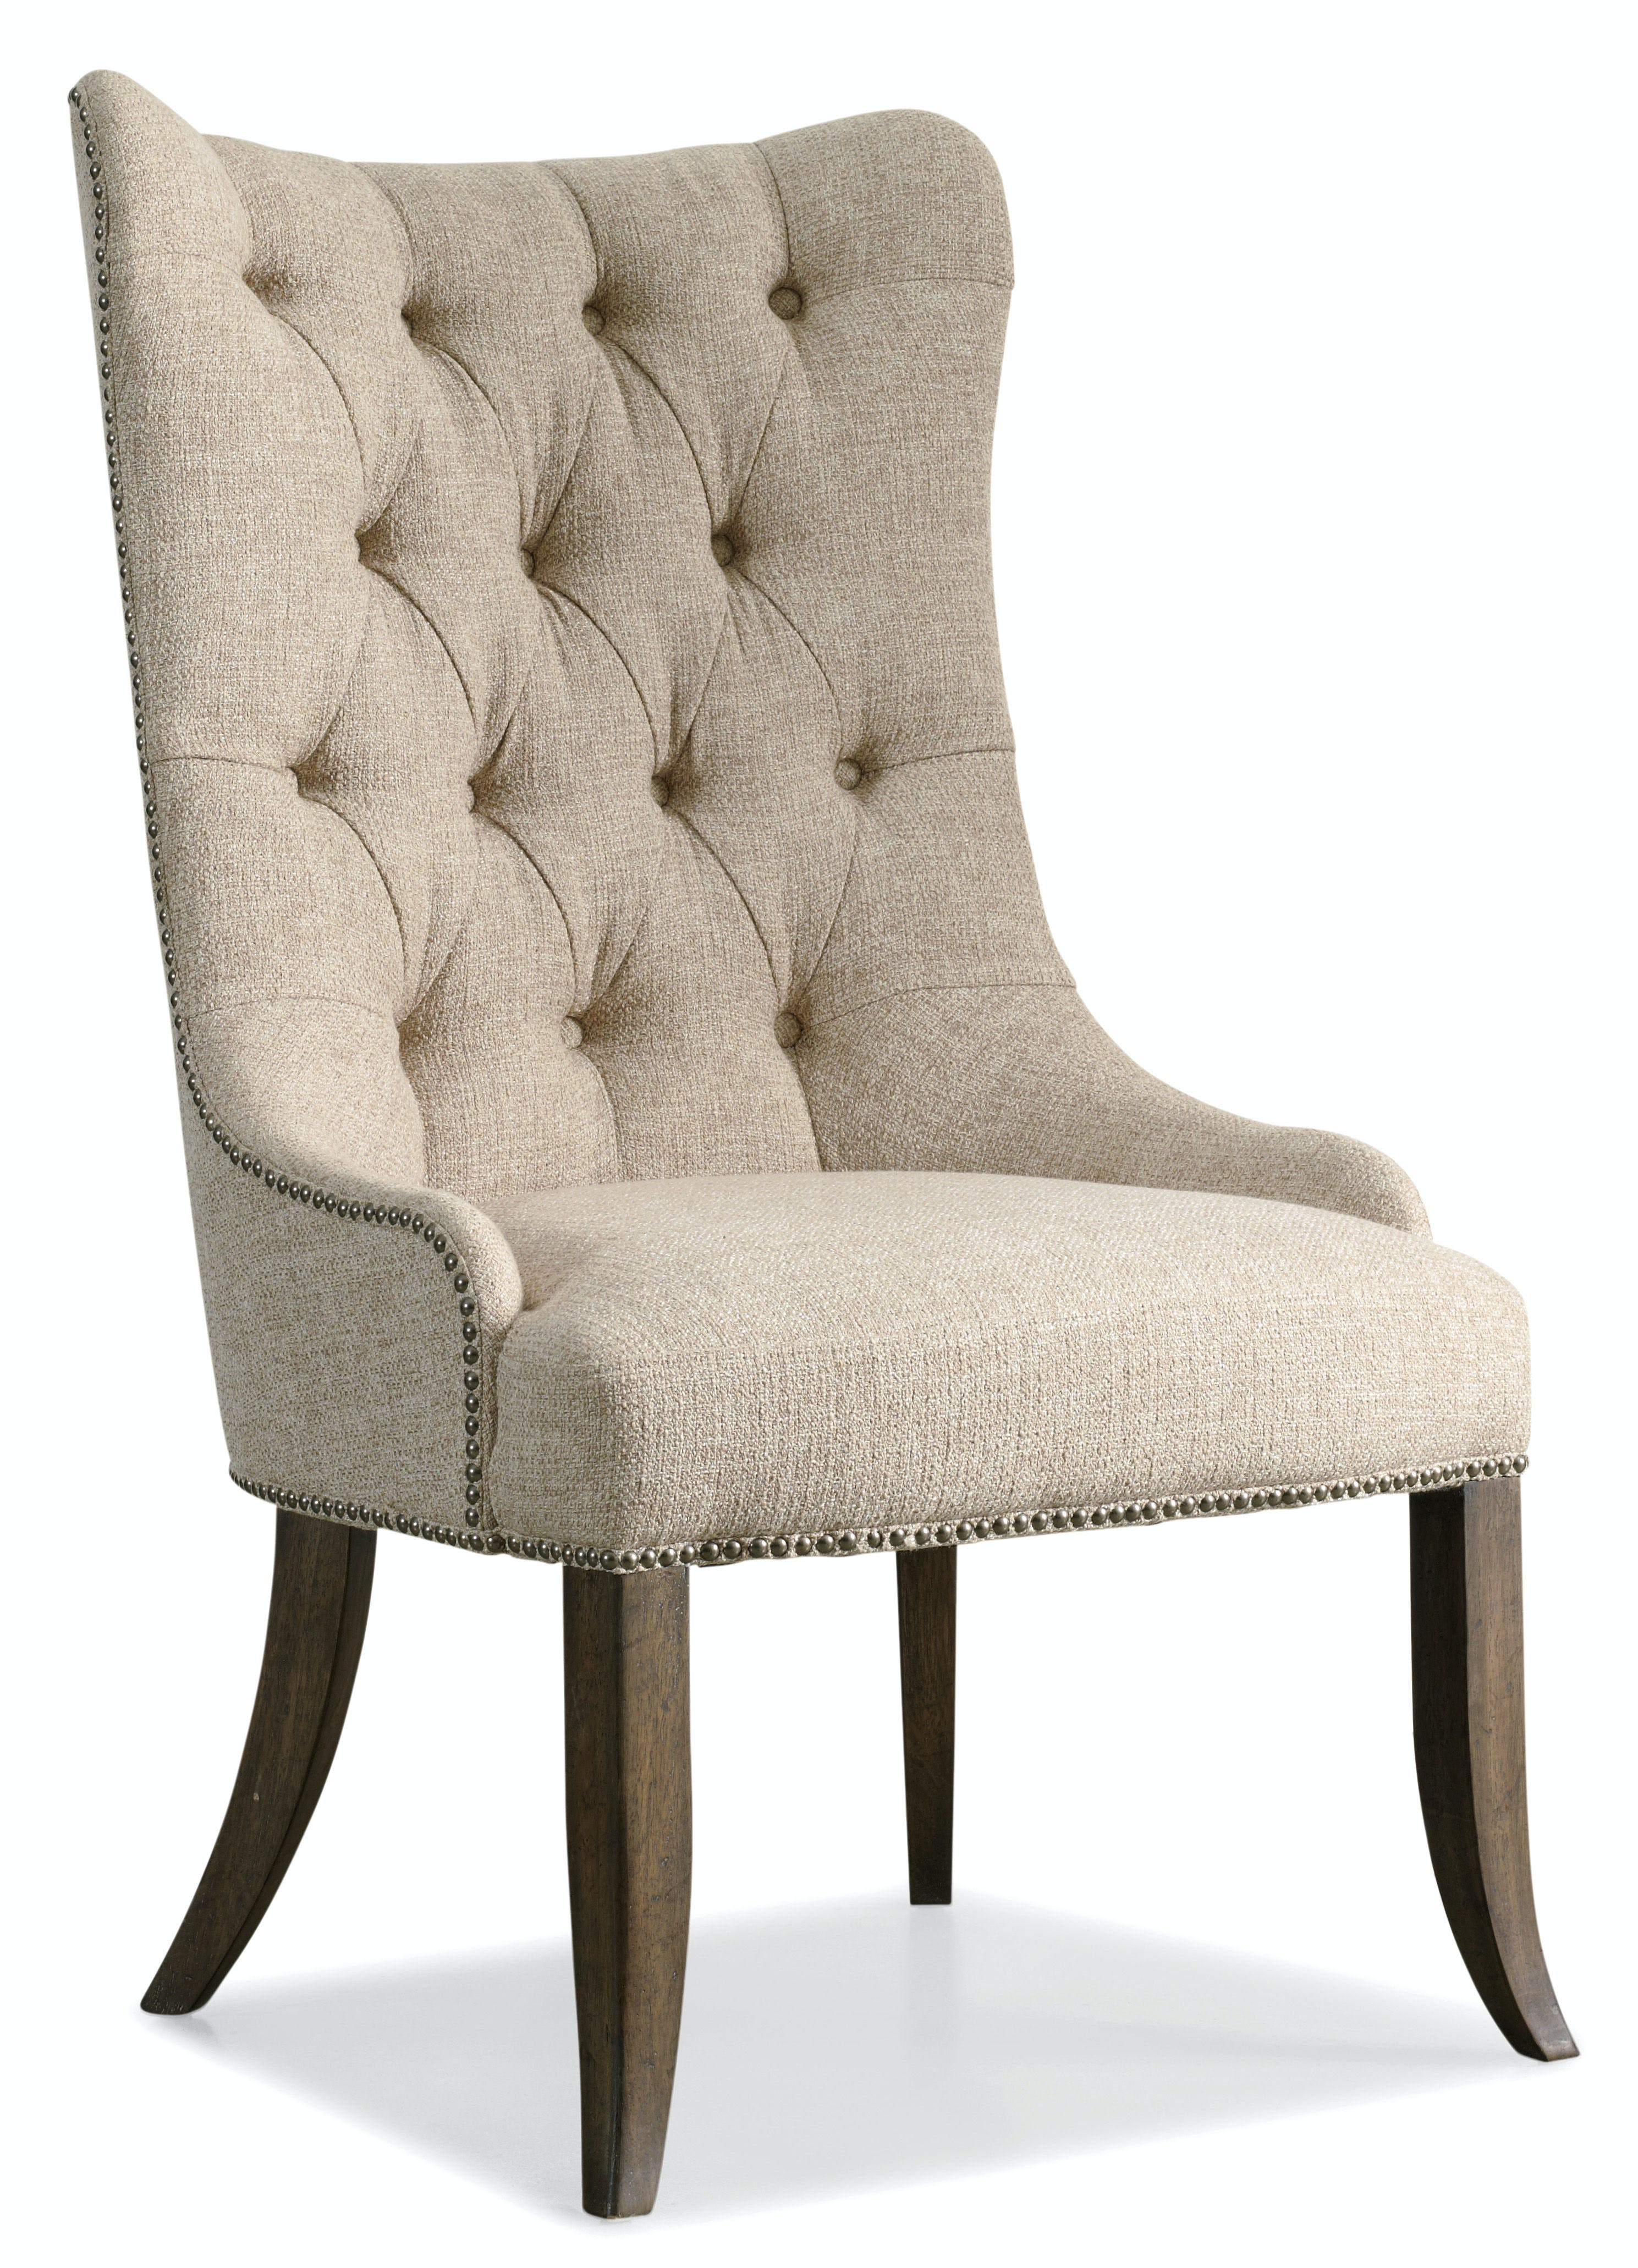 Hooker Furniture Dining Room Rhapsody Tufted Dining Chair